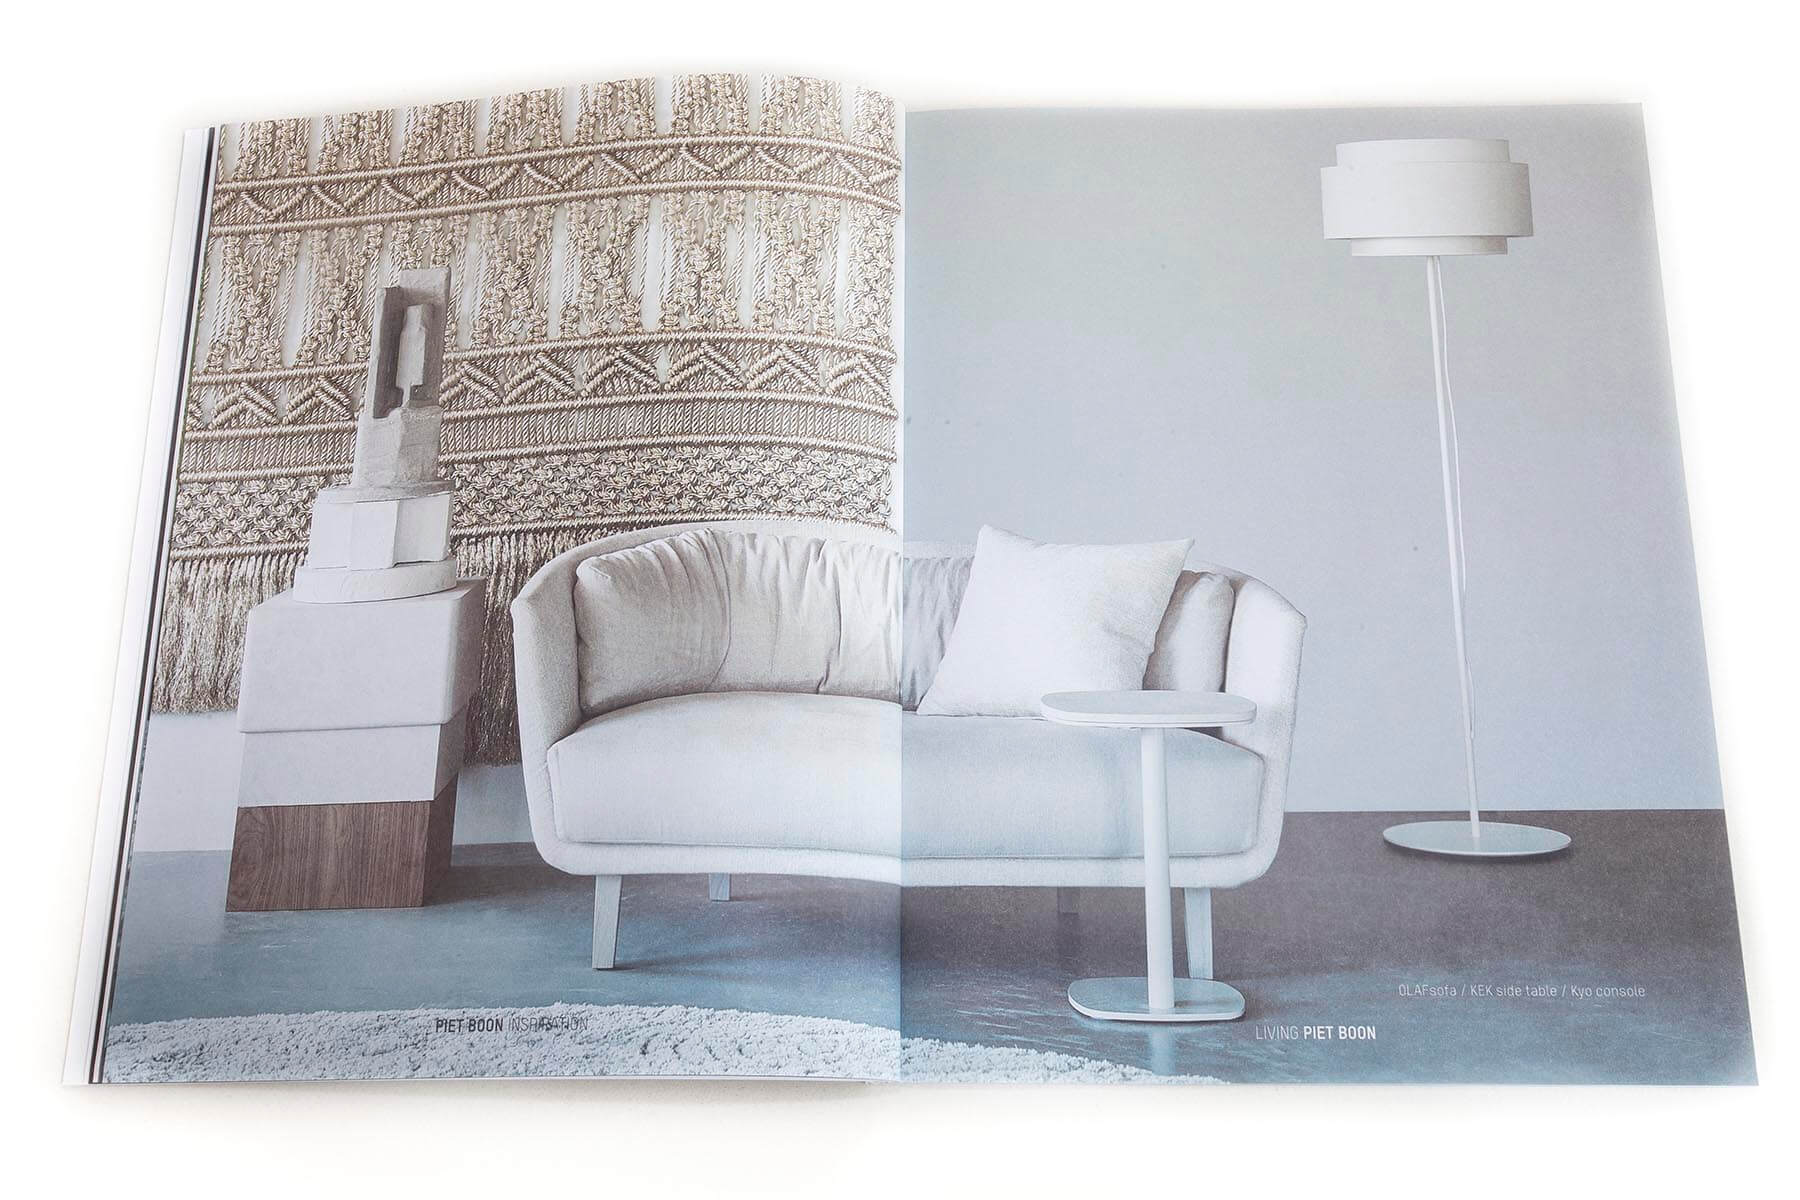 Piet Boon Featuring article Milla Novo Macrame Wallhanging